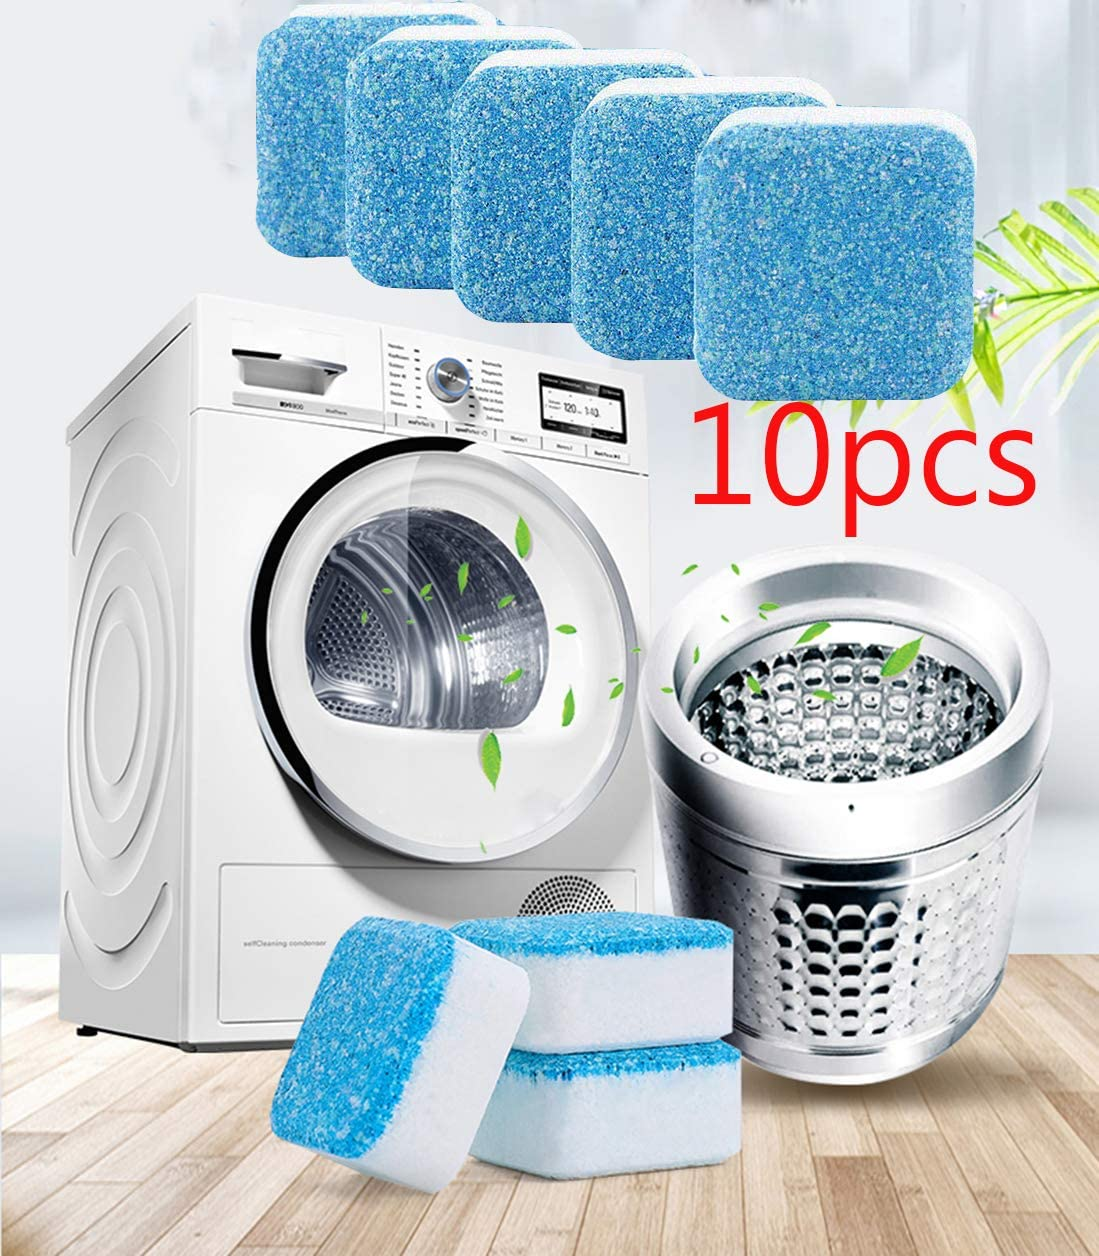 Effervescent Tablet Washing Machine Cleaner, Cleaning deep Remover, Solid Washing Machine Cleaner with Triple decontamination Function, Suitable for Bathroom Kitchen (10 pcs)